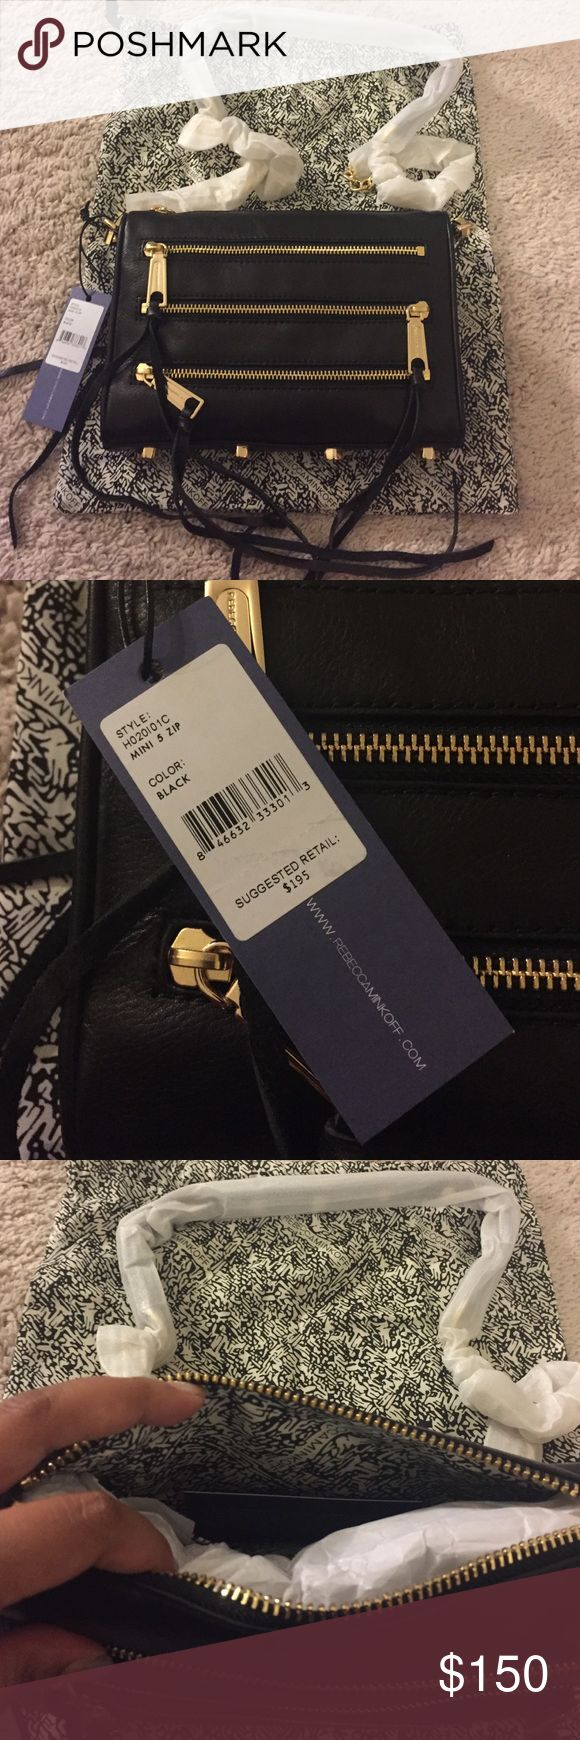 Rebecca Minkoff Mini 5 zip Black never been used gold hardware. Willing to negotiate but has to be reasonable. No low balling please and thank you Rebecca Minkoff Bags